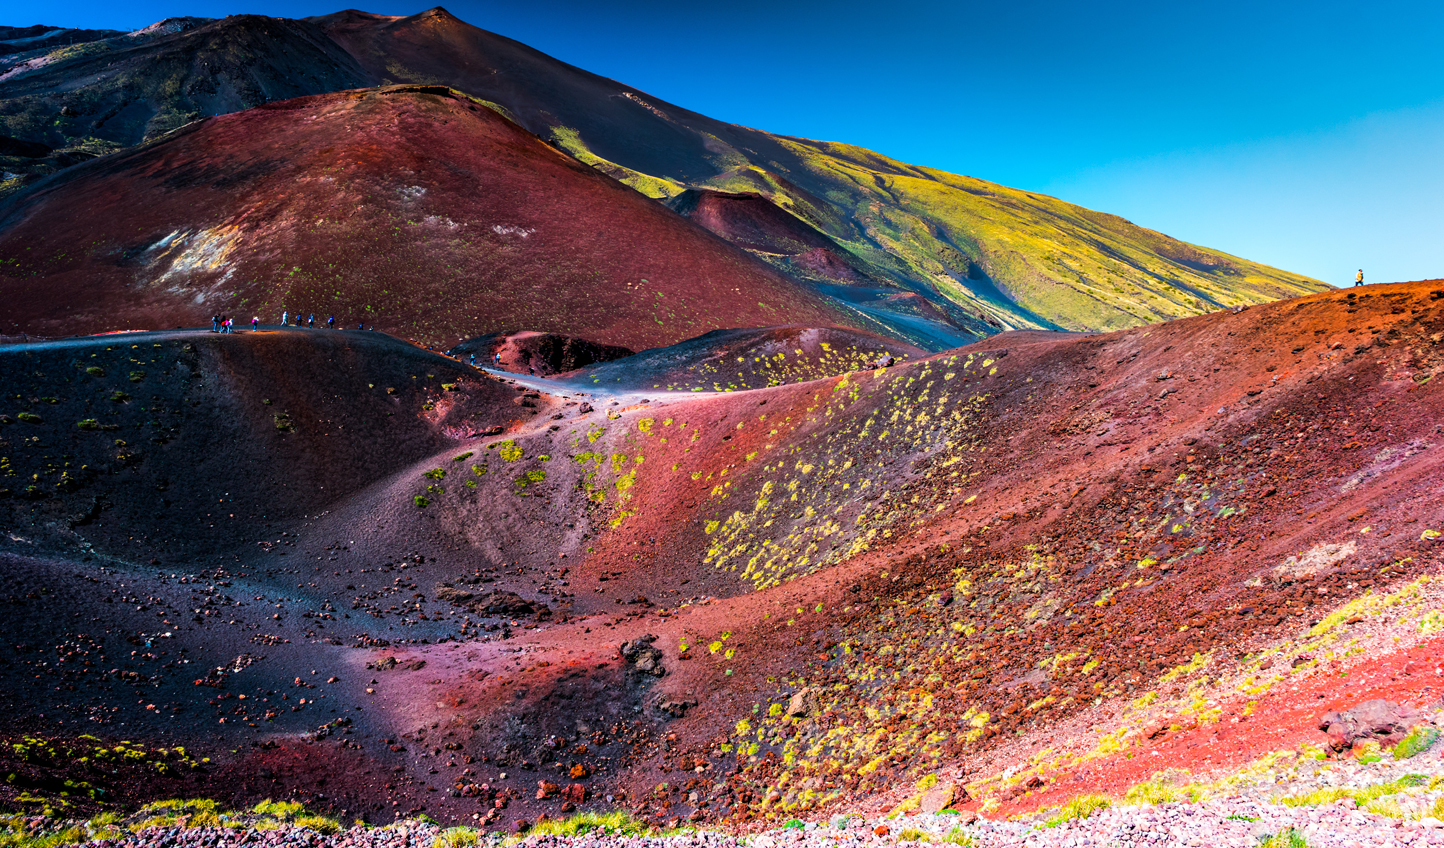 The otherworldly lunar landscapes of Mount Etna